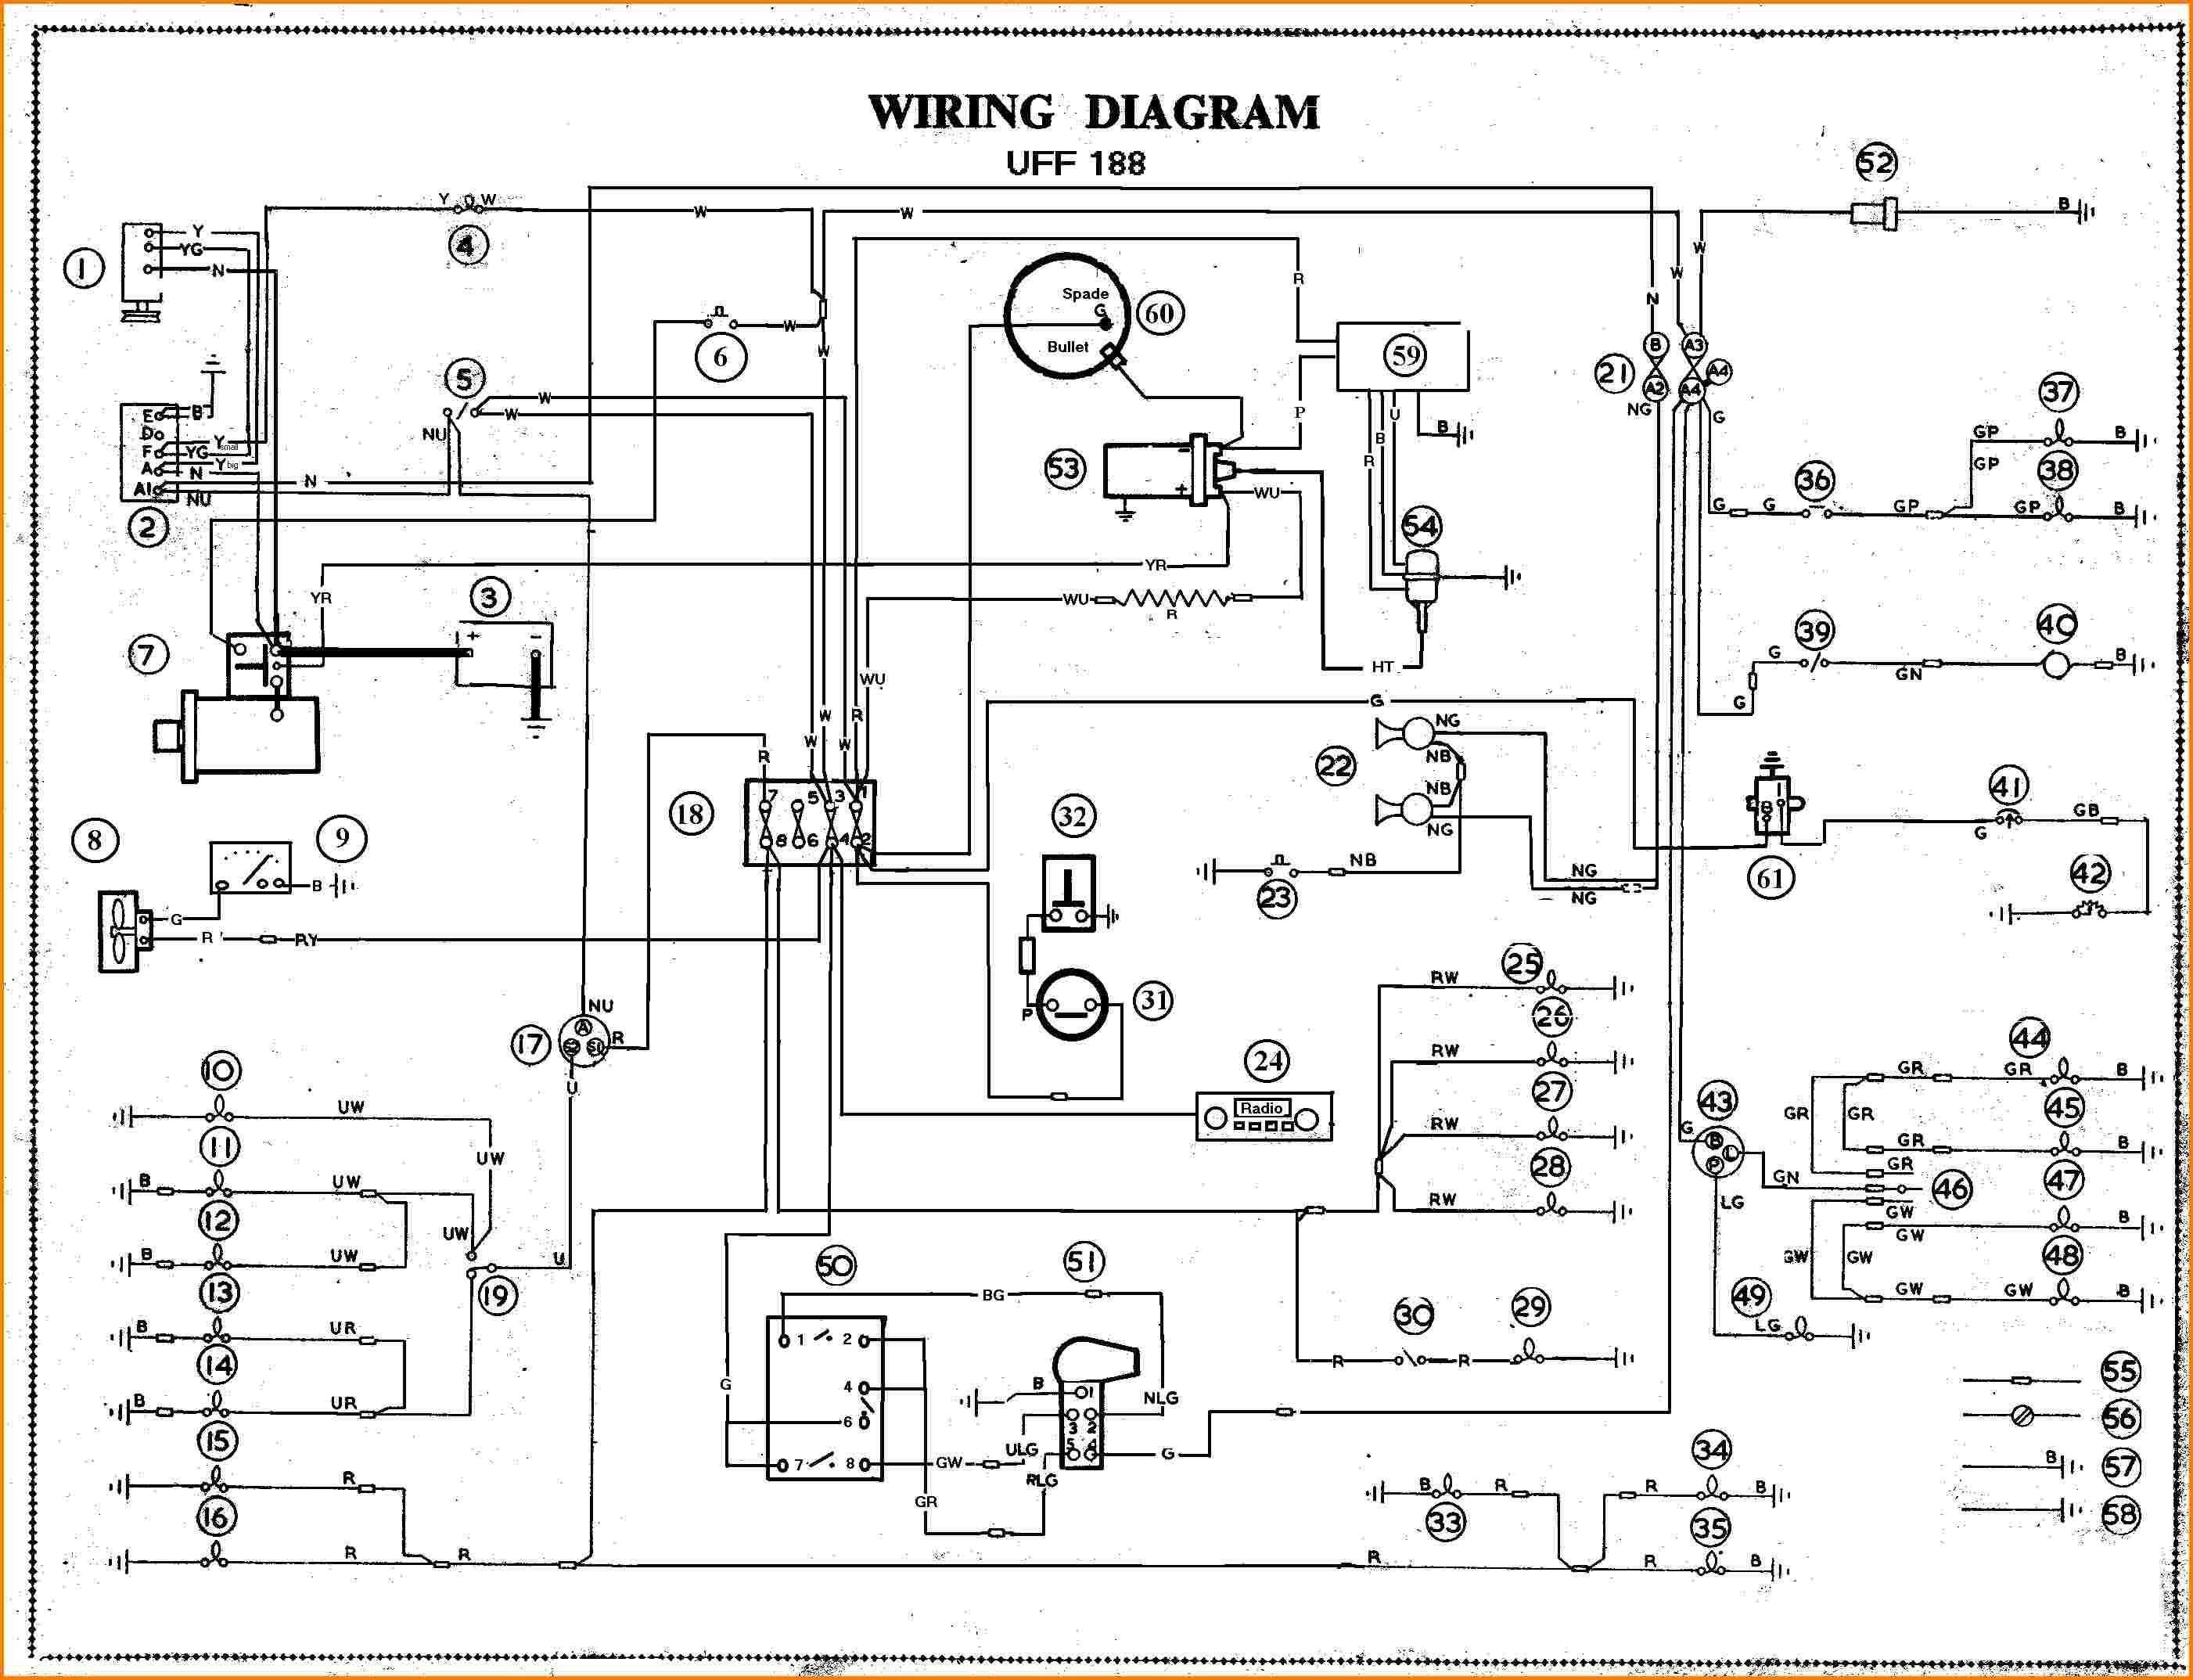 program diagram wiring diagram schematic